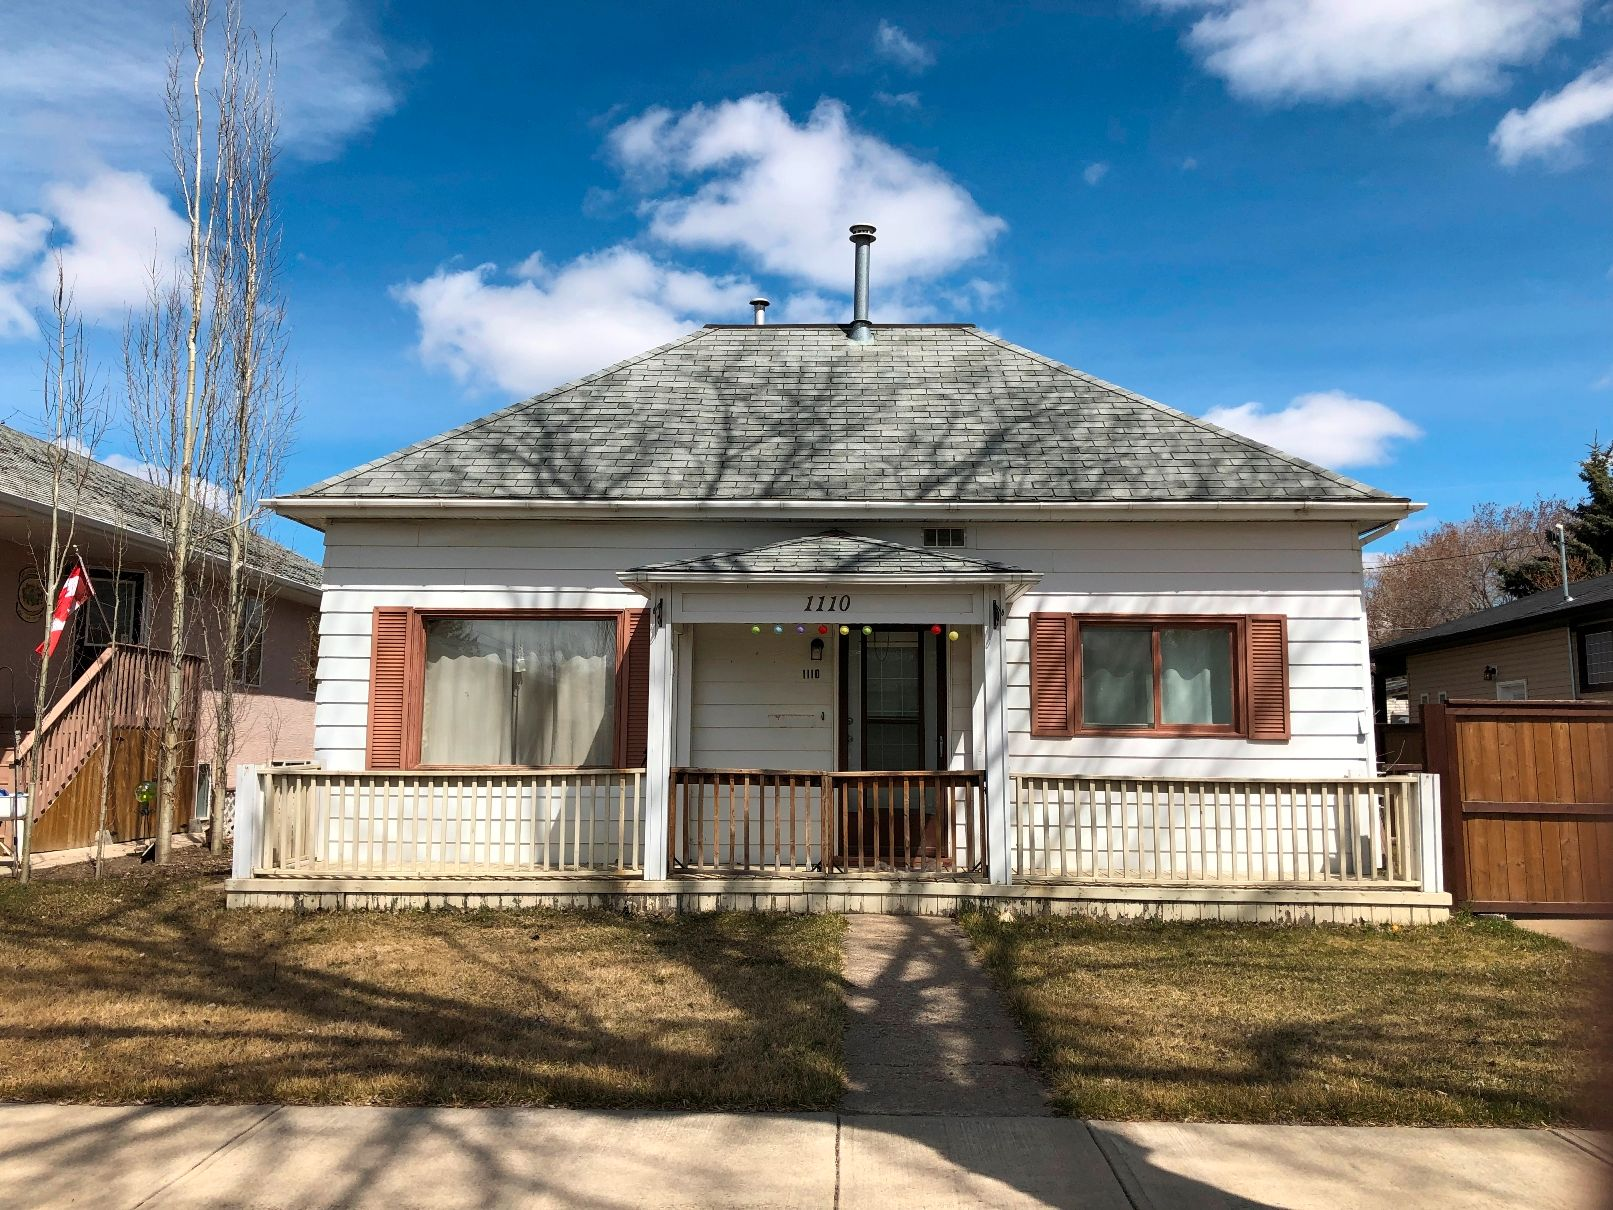 Main Photo: 1110 3 Avenue in Waiwright: Wainwright House for sale (MD of Waiwright)  : MLS®#  A1125551